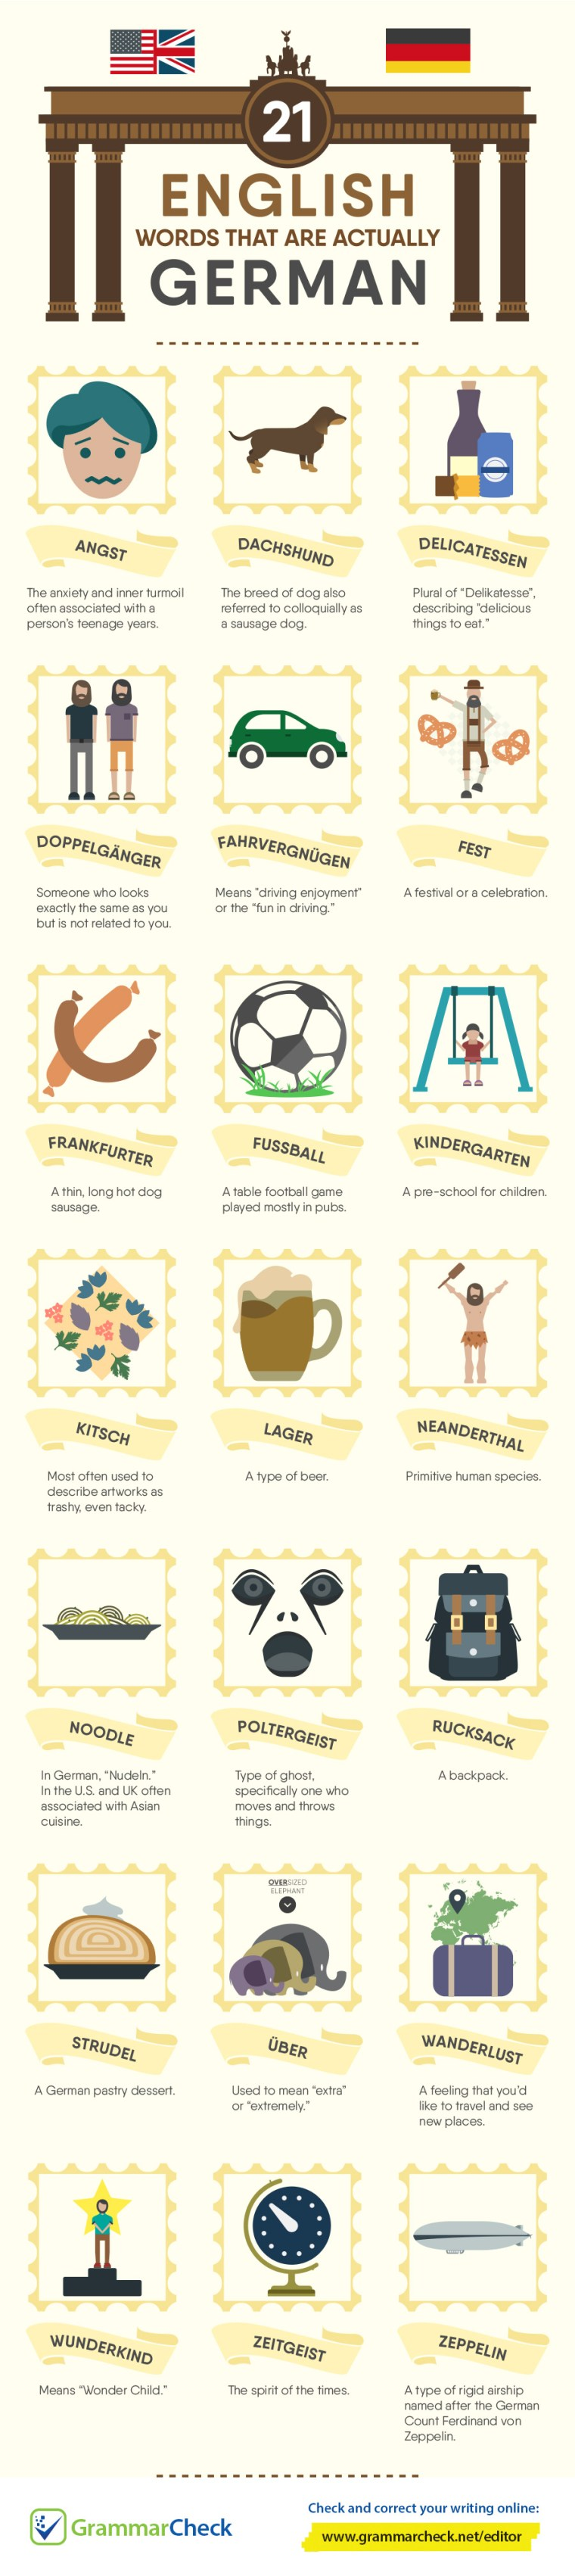 20 English Words That Are Actually German (Infographic)